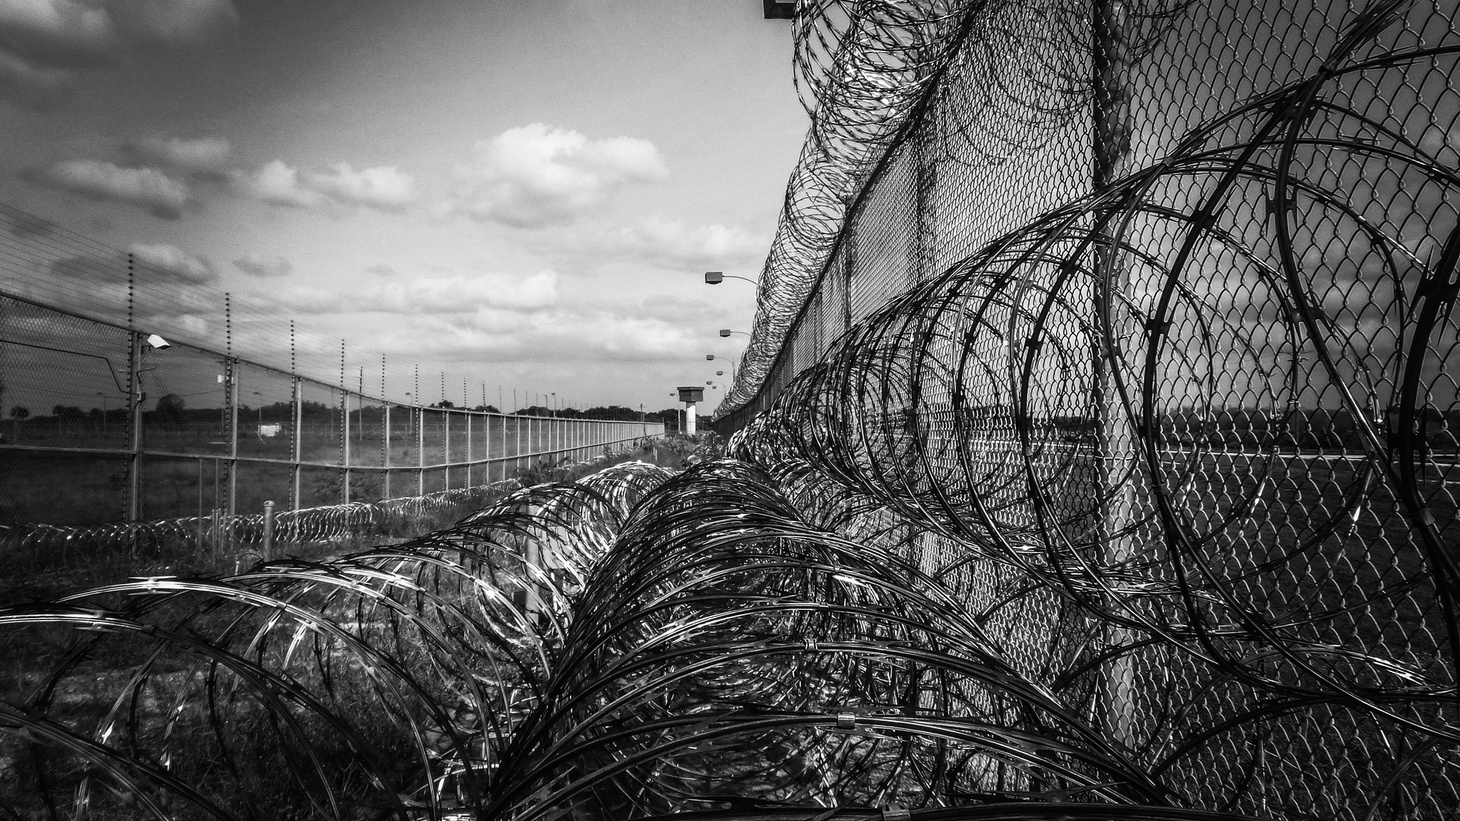 The Supreme Court struck down a prior ruling requiring the Orange County Sheriff's Department to strengthen safety procedures amid the COVID-19 pandemic. Since March, nearly 500 inmates have tested positive for the virus.